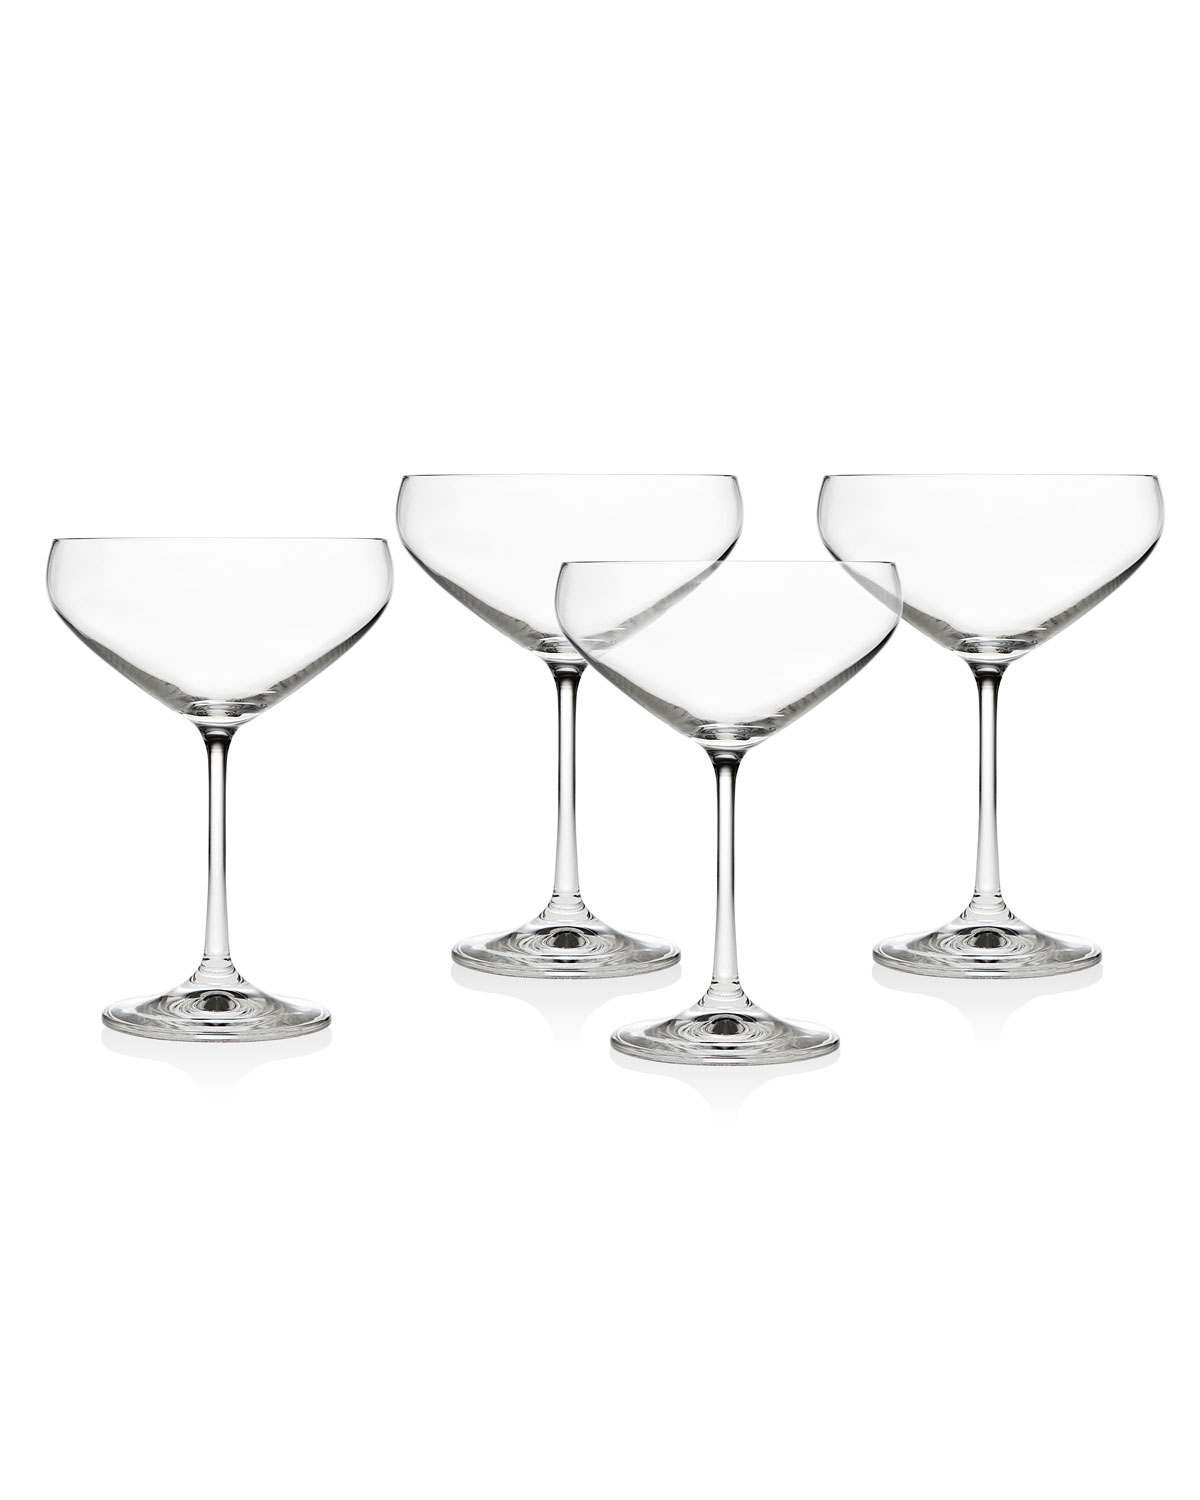 Meridian Champagne Coupe Cocktail Glasses, Set of 4